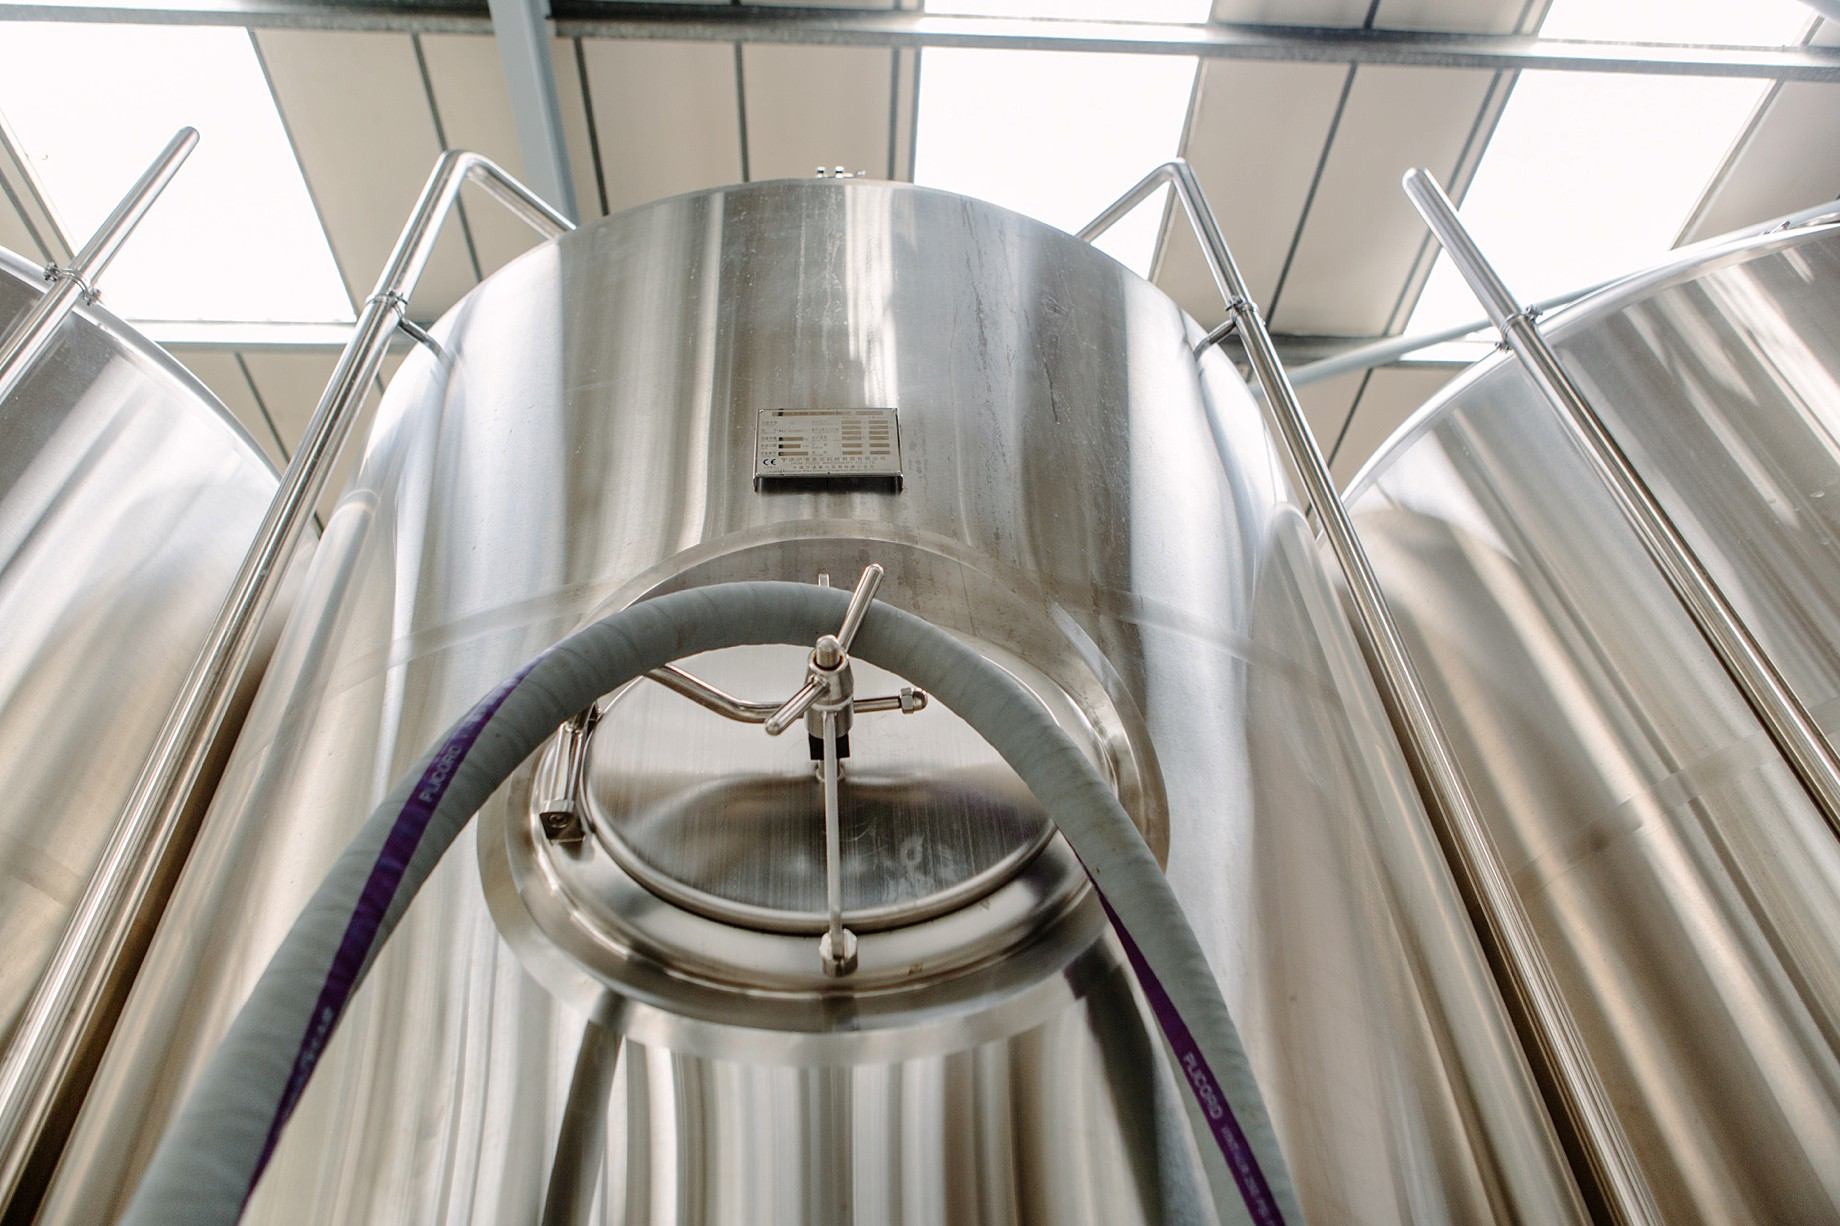 Cloudwater_brew_Co_011_fementing_tanks.JPG